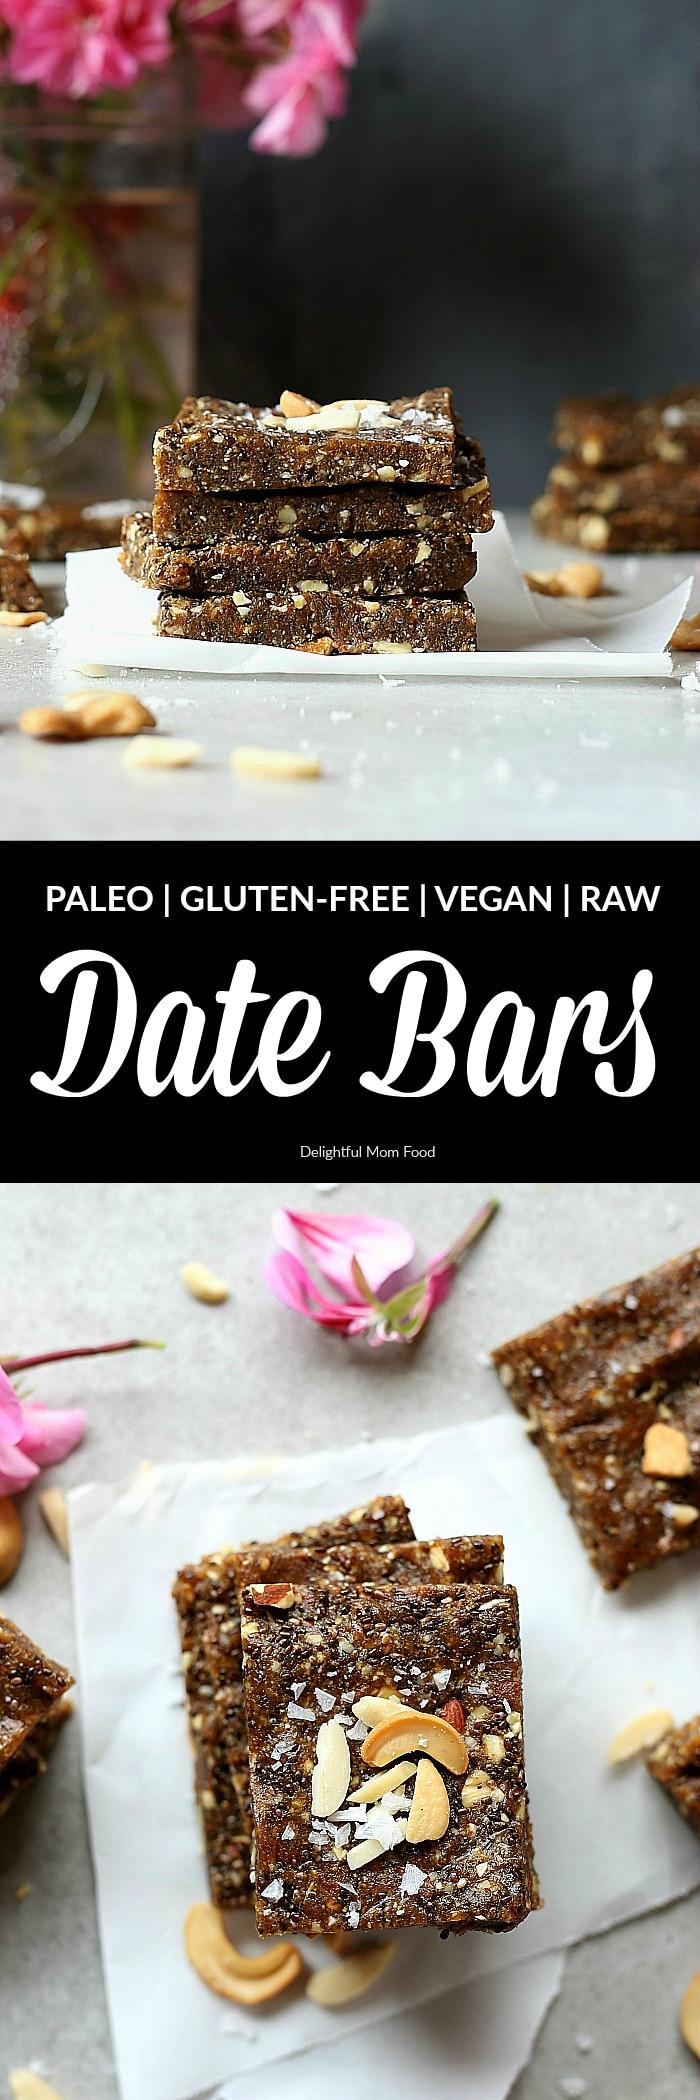 Heavenly date bars that are deliciously good for you! A decadent raw bar rich in natural sweetness from Medjool dates! These easy raw chia date bars take as little as 10 minutes to make! They are the chewy, soft, crunchy and make the perfect superfood energy pick-me-up after a workout or first thing in the morning! #raw #date #bars #snacks #healthy #glutenfree #grainfree #paleo #easy #homemade | Recipe at delightfulmomfood.com